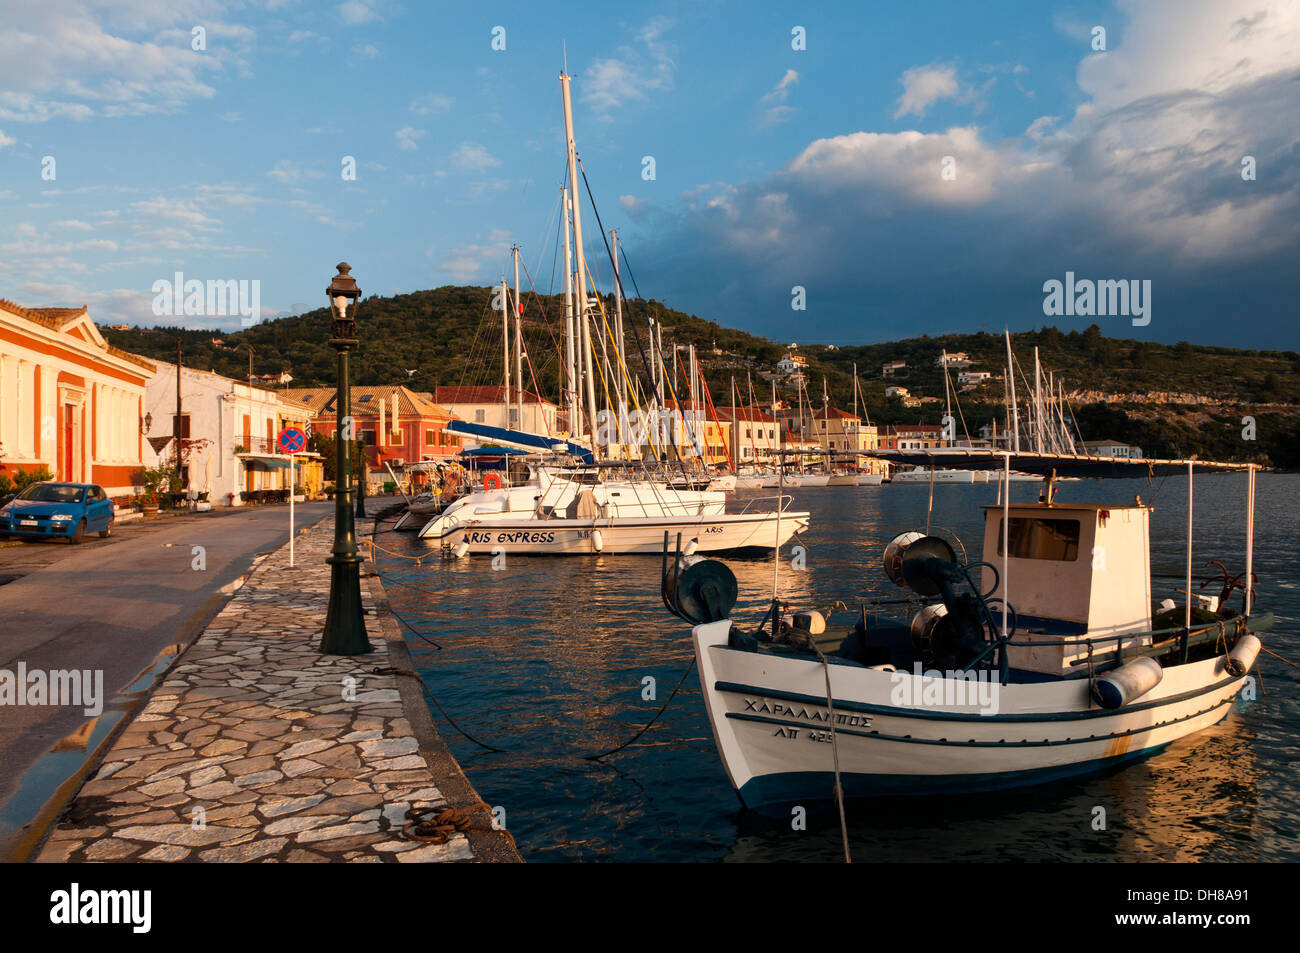 The greek fishing village of Gaios on the island of Paxos - Stock Image